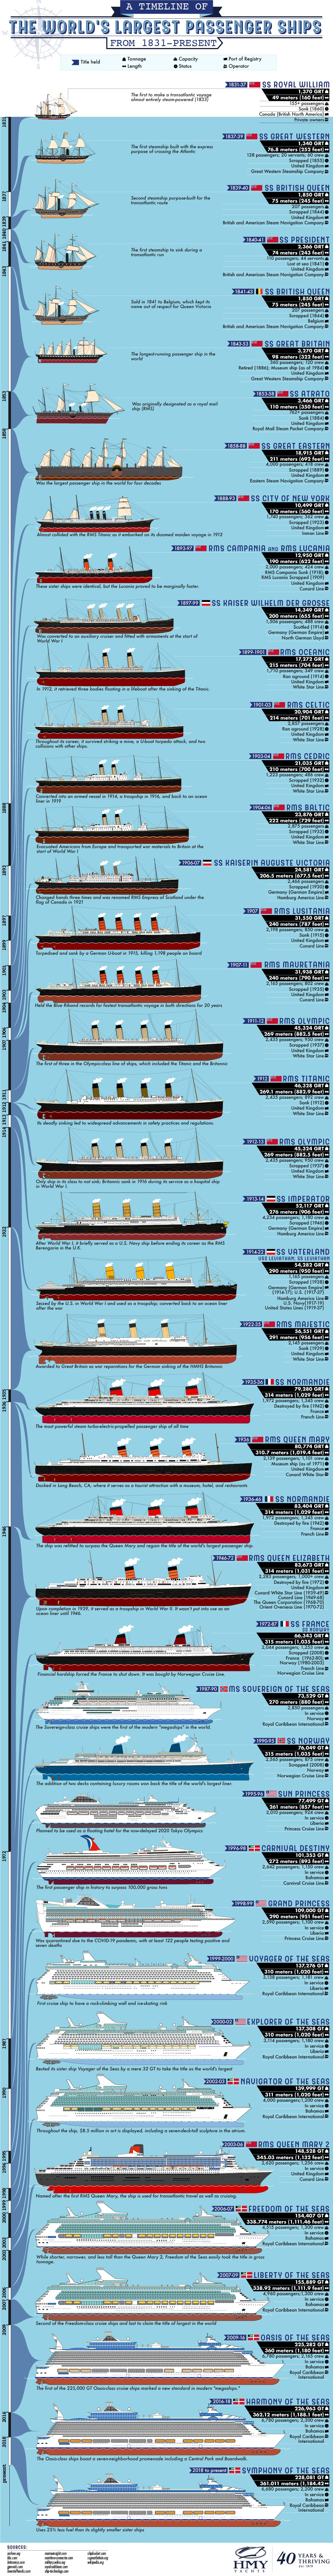 A Timeline of the World's Largest Passenger Ships from 1831 - Present